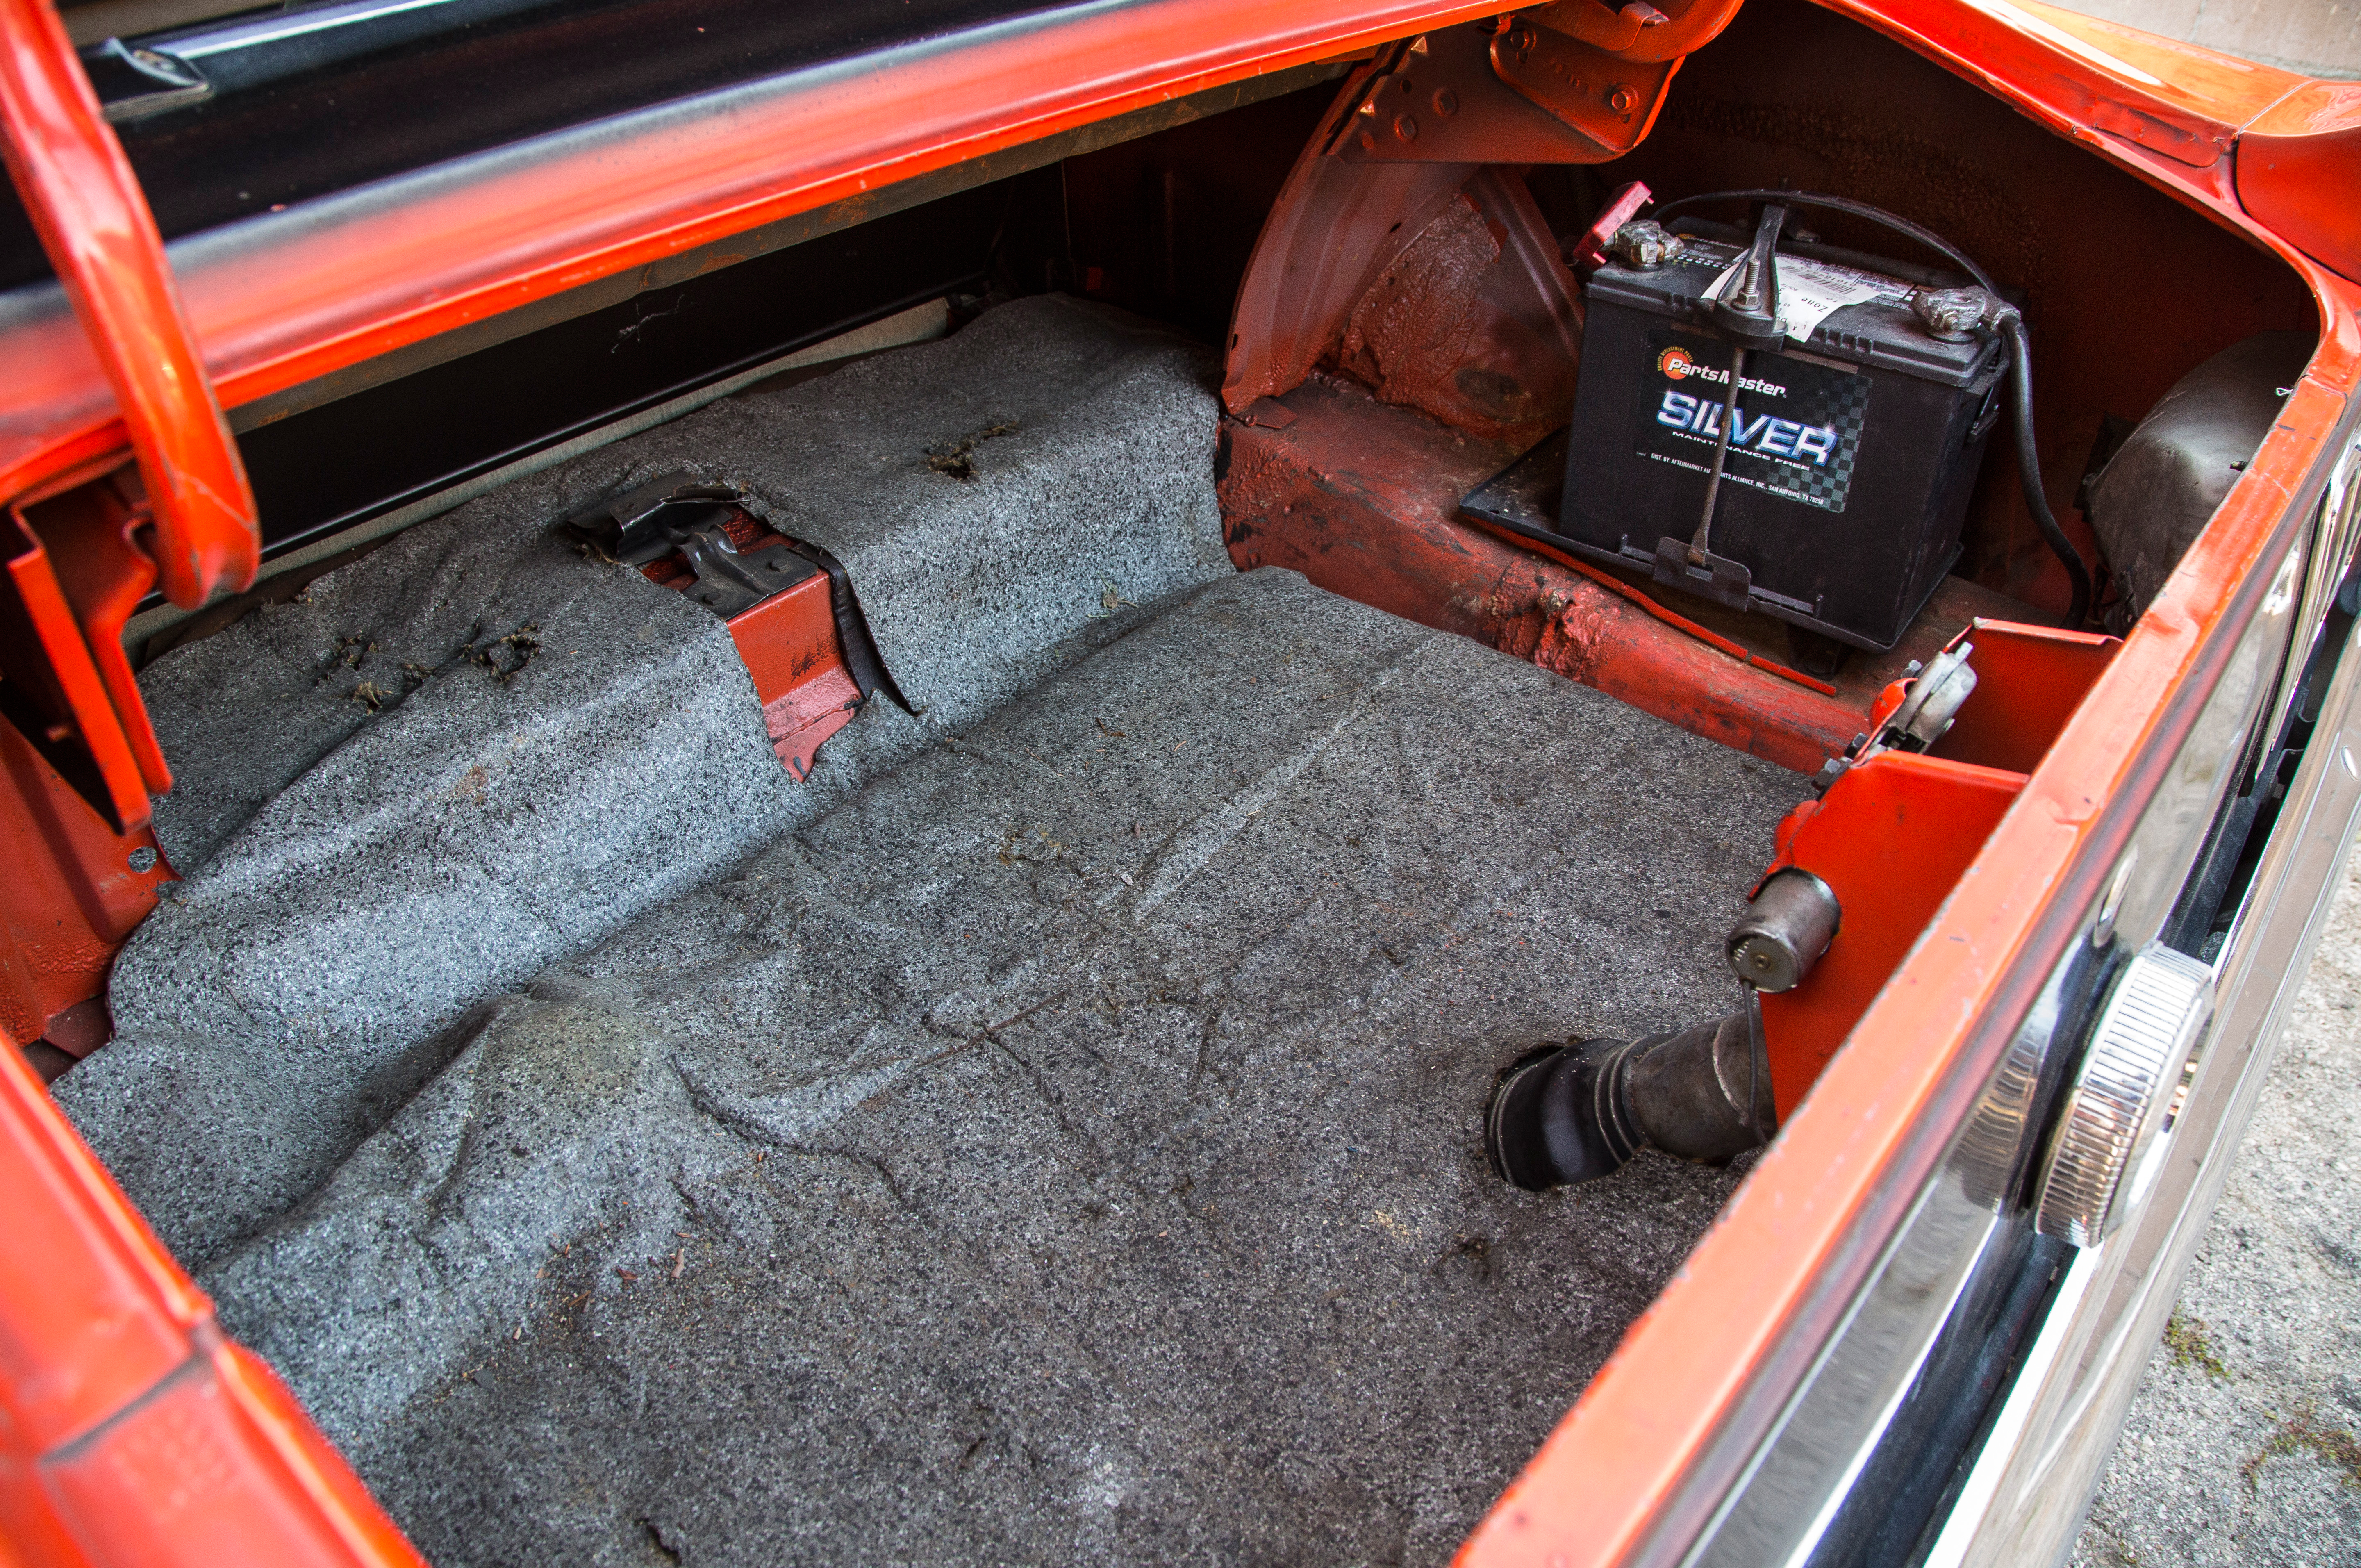 The big 429 took up so much space in the Mustang's engine bay that many components—like the suspension mounts—had to be relocated. There was no room for a battery, so it was put in the trunk, all the better to aid traction at launch.